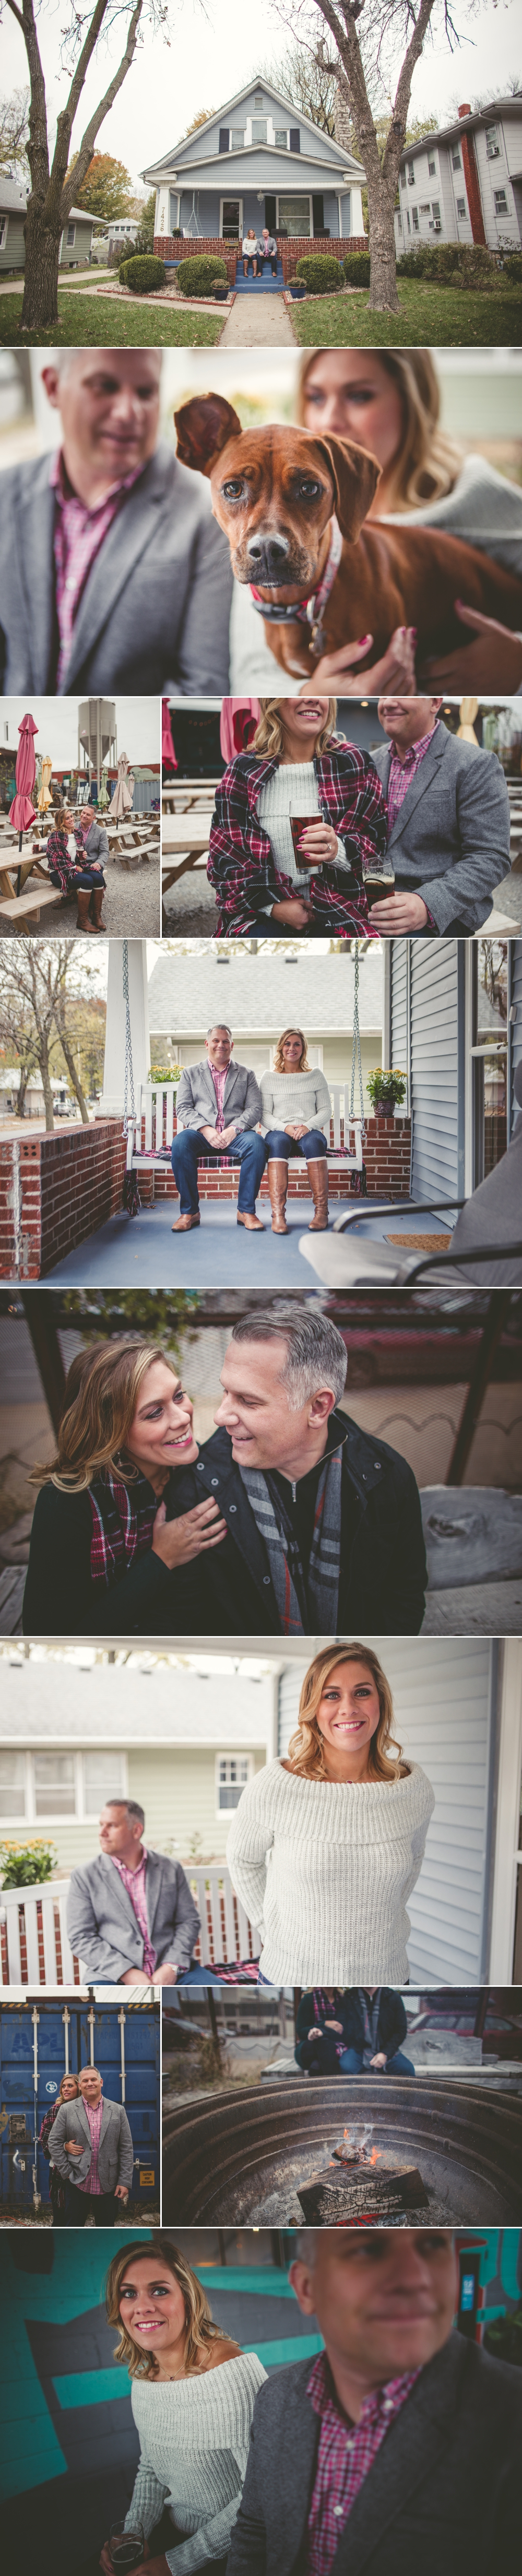 jason_domingues_photography_best_kansas_city_photographer_kc_engagement_session_0001.JPG